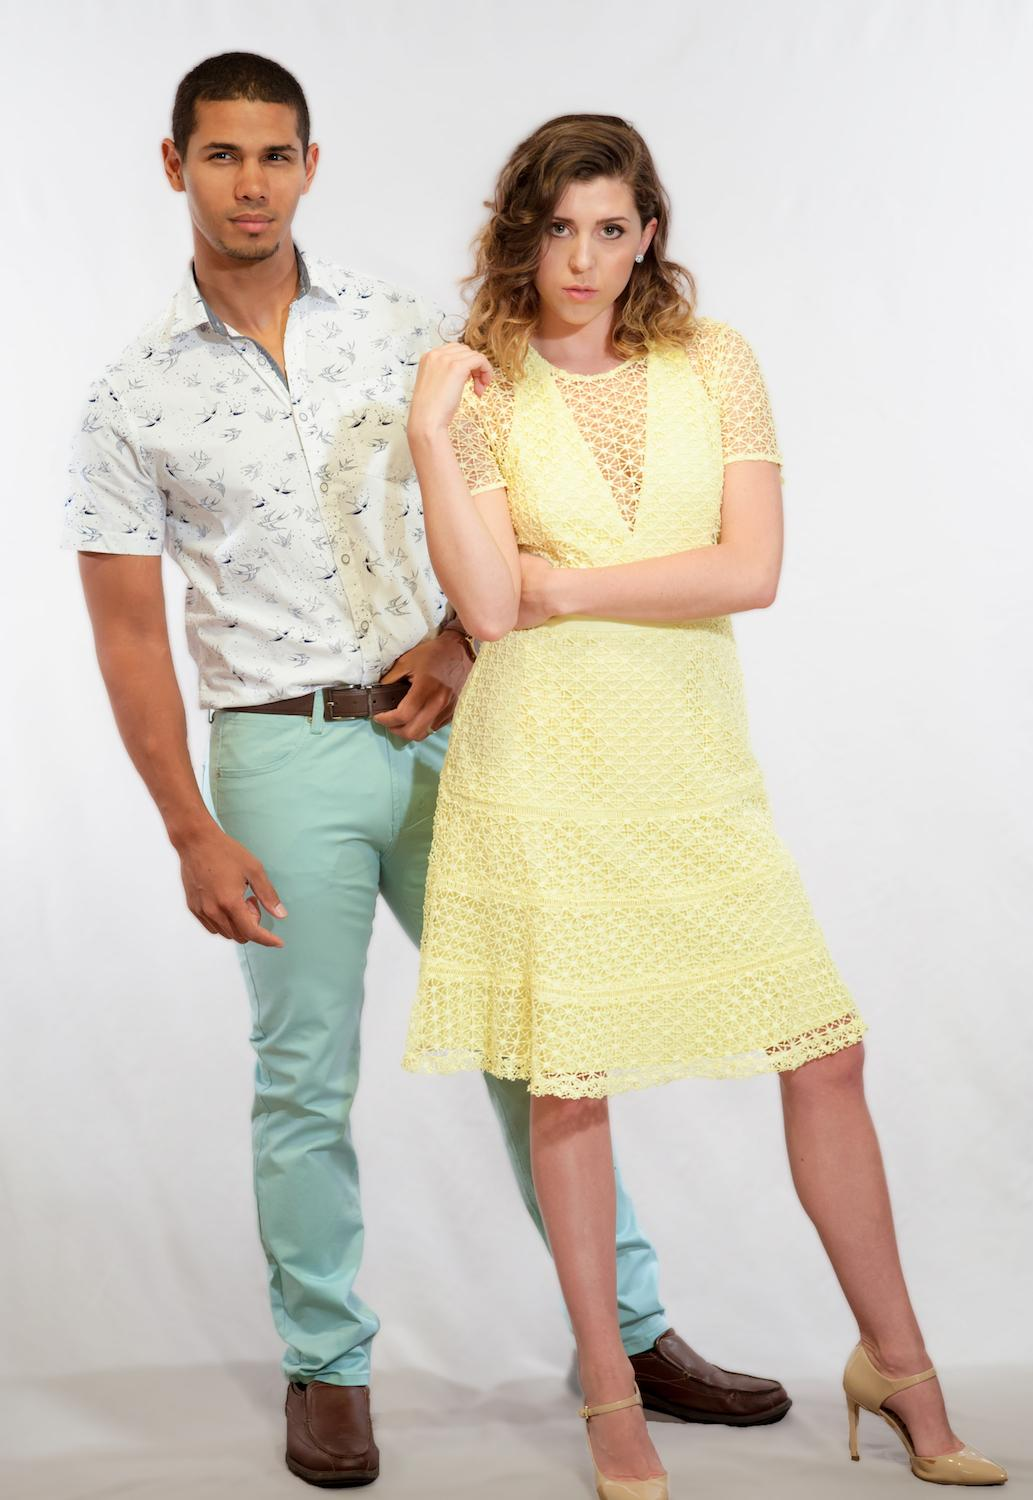 PARTY STYLE: Festive / White Button up with birds: Denim and Flowers by Ricky Singh / Mint Pants: Paper Denim and Cloth / Yellow dress: (Adelyn Rae) Finery Dress Boutique / Image: Tifani Ahren Davis // Published: 5.17.17